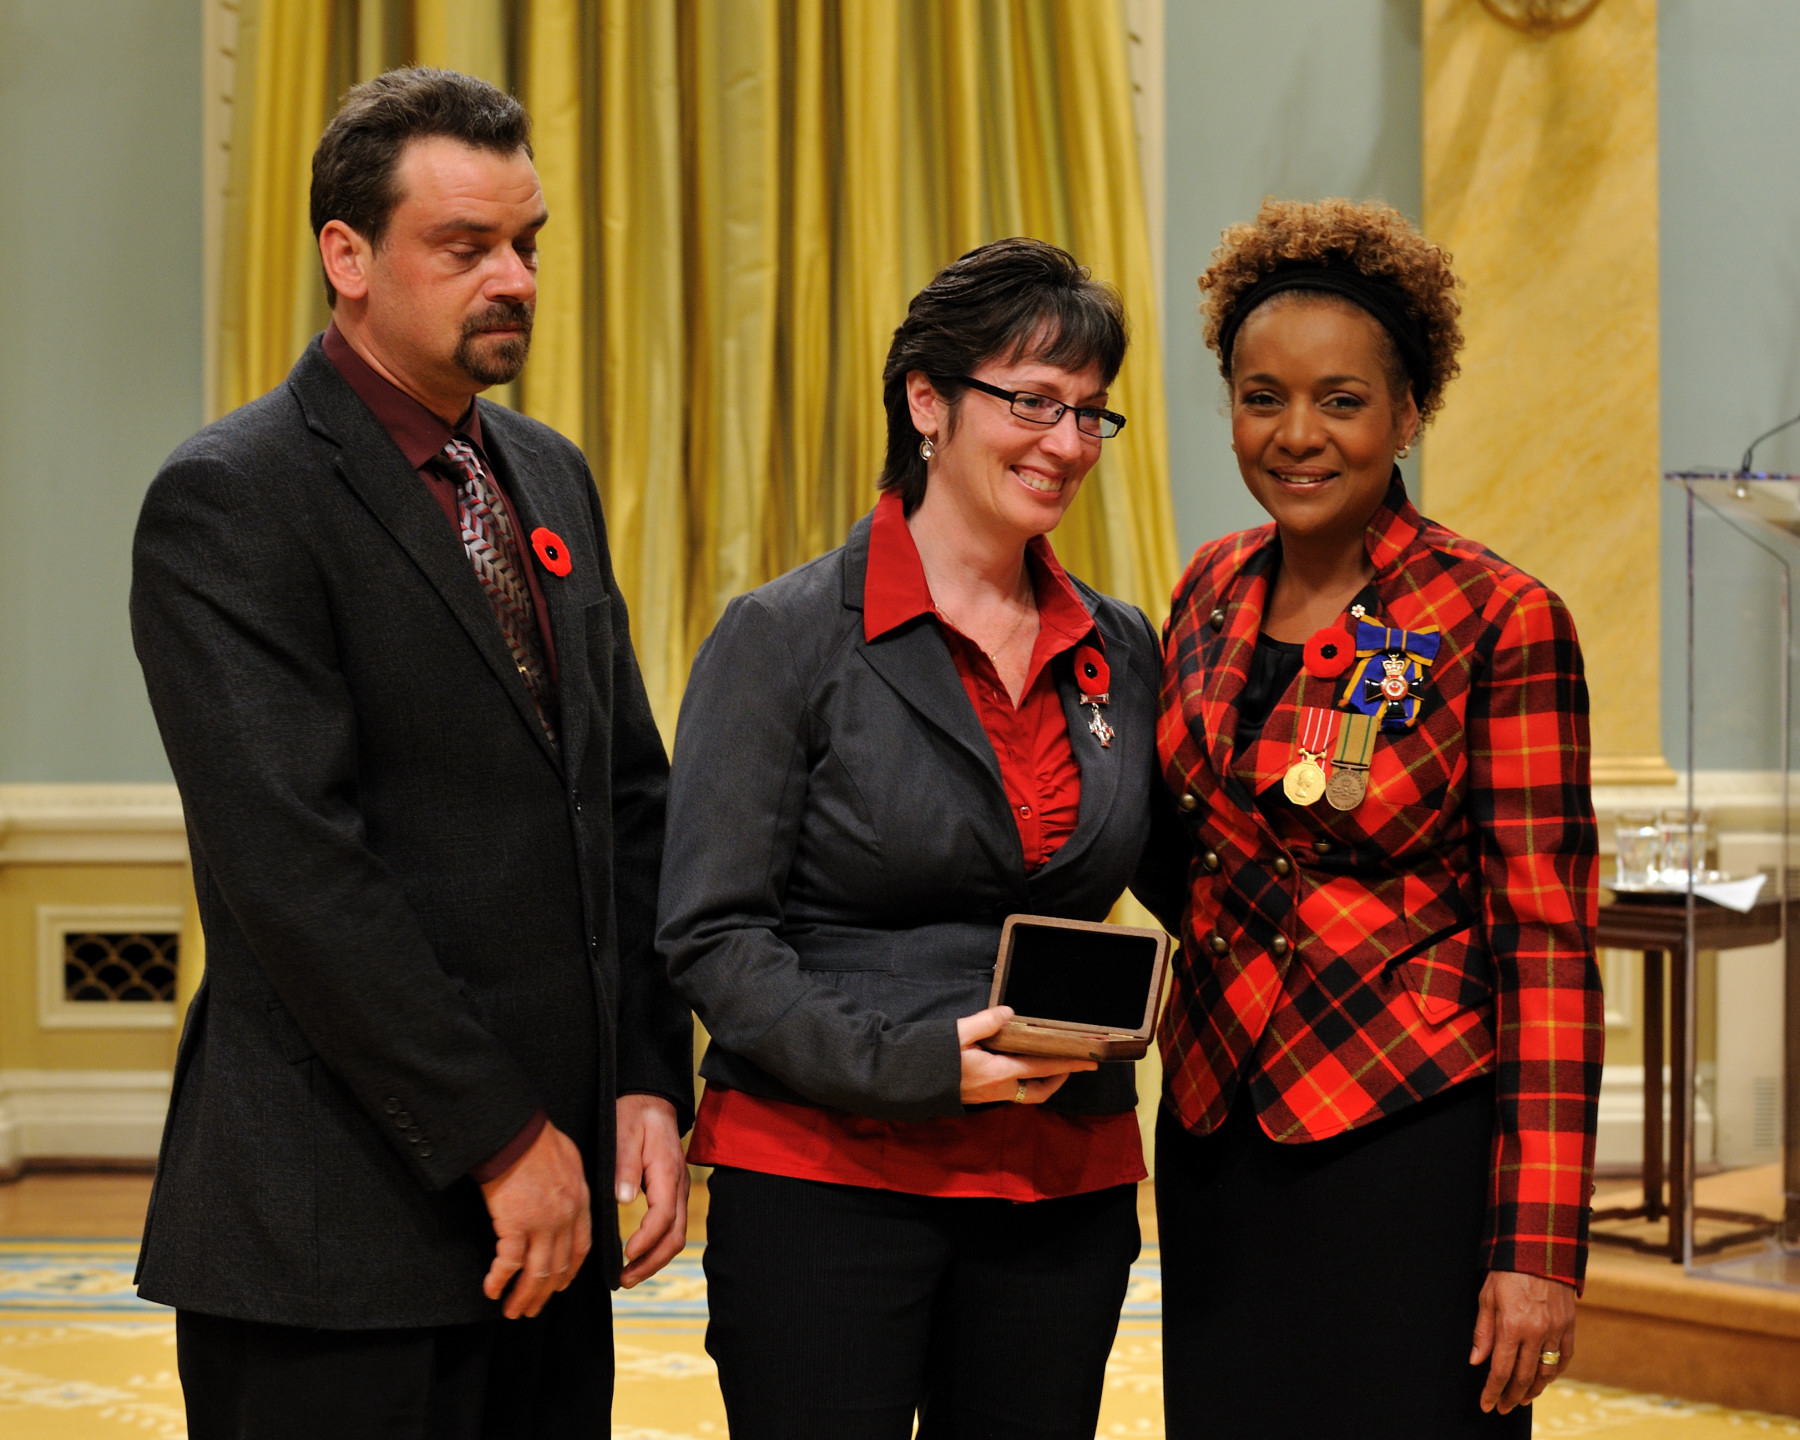 Her Excellency the Right Honourable Michaëlle Jean, Commander-in-Chief of Canada, presented the Sacrifice Medal to the family of Private Arielle Marie Keyes-Oliver, who was honoured posthumously.